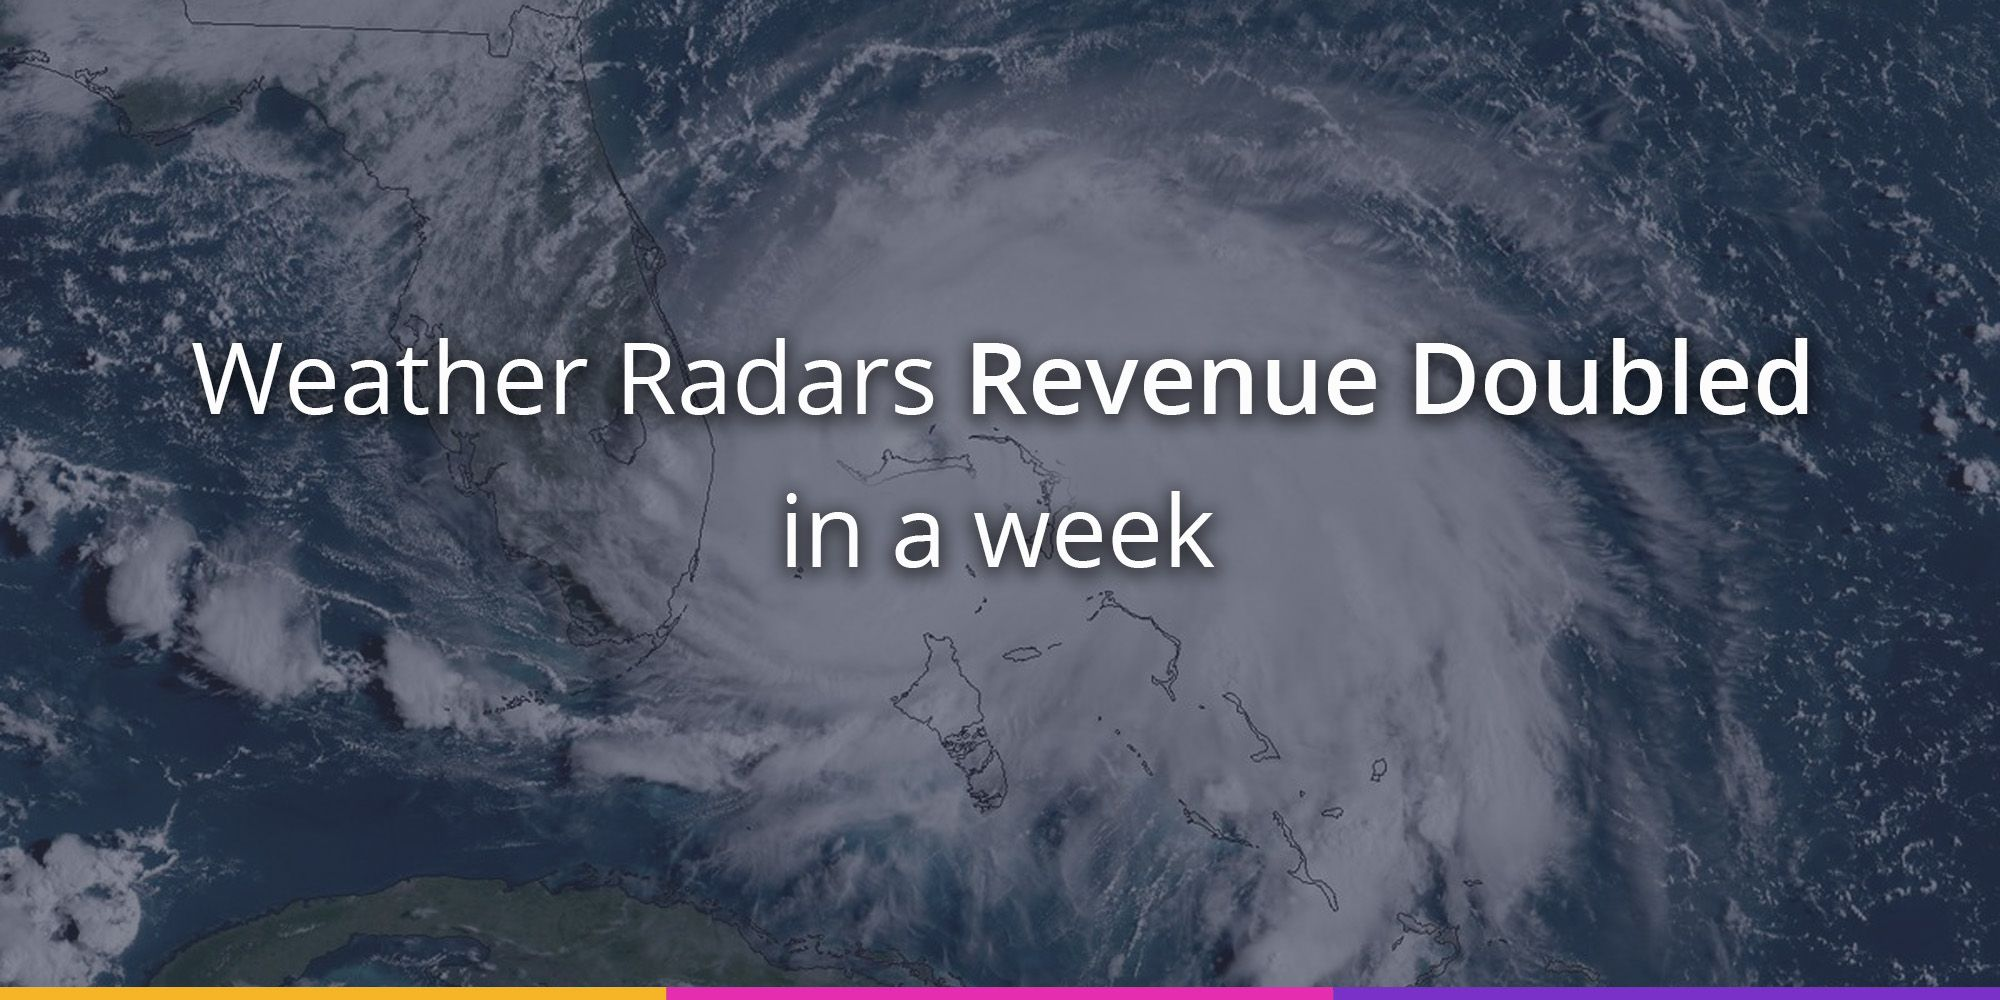 Weather Radars Revenue Doubled in the US Along of Hurricane Dorian